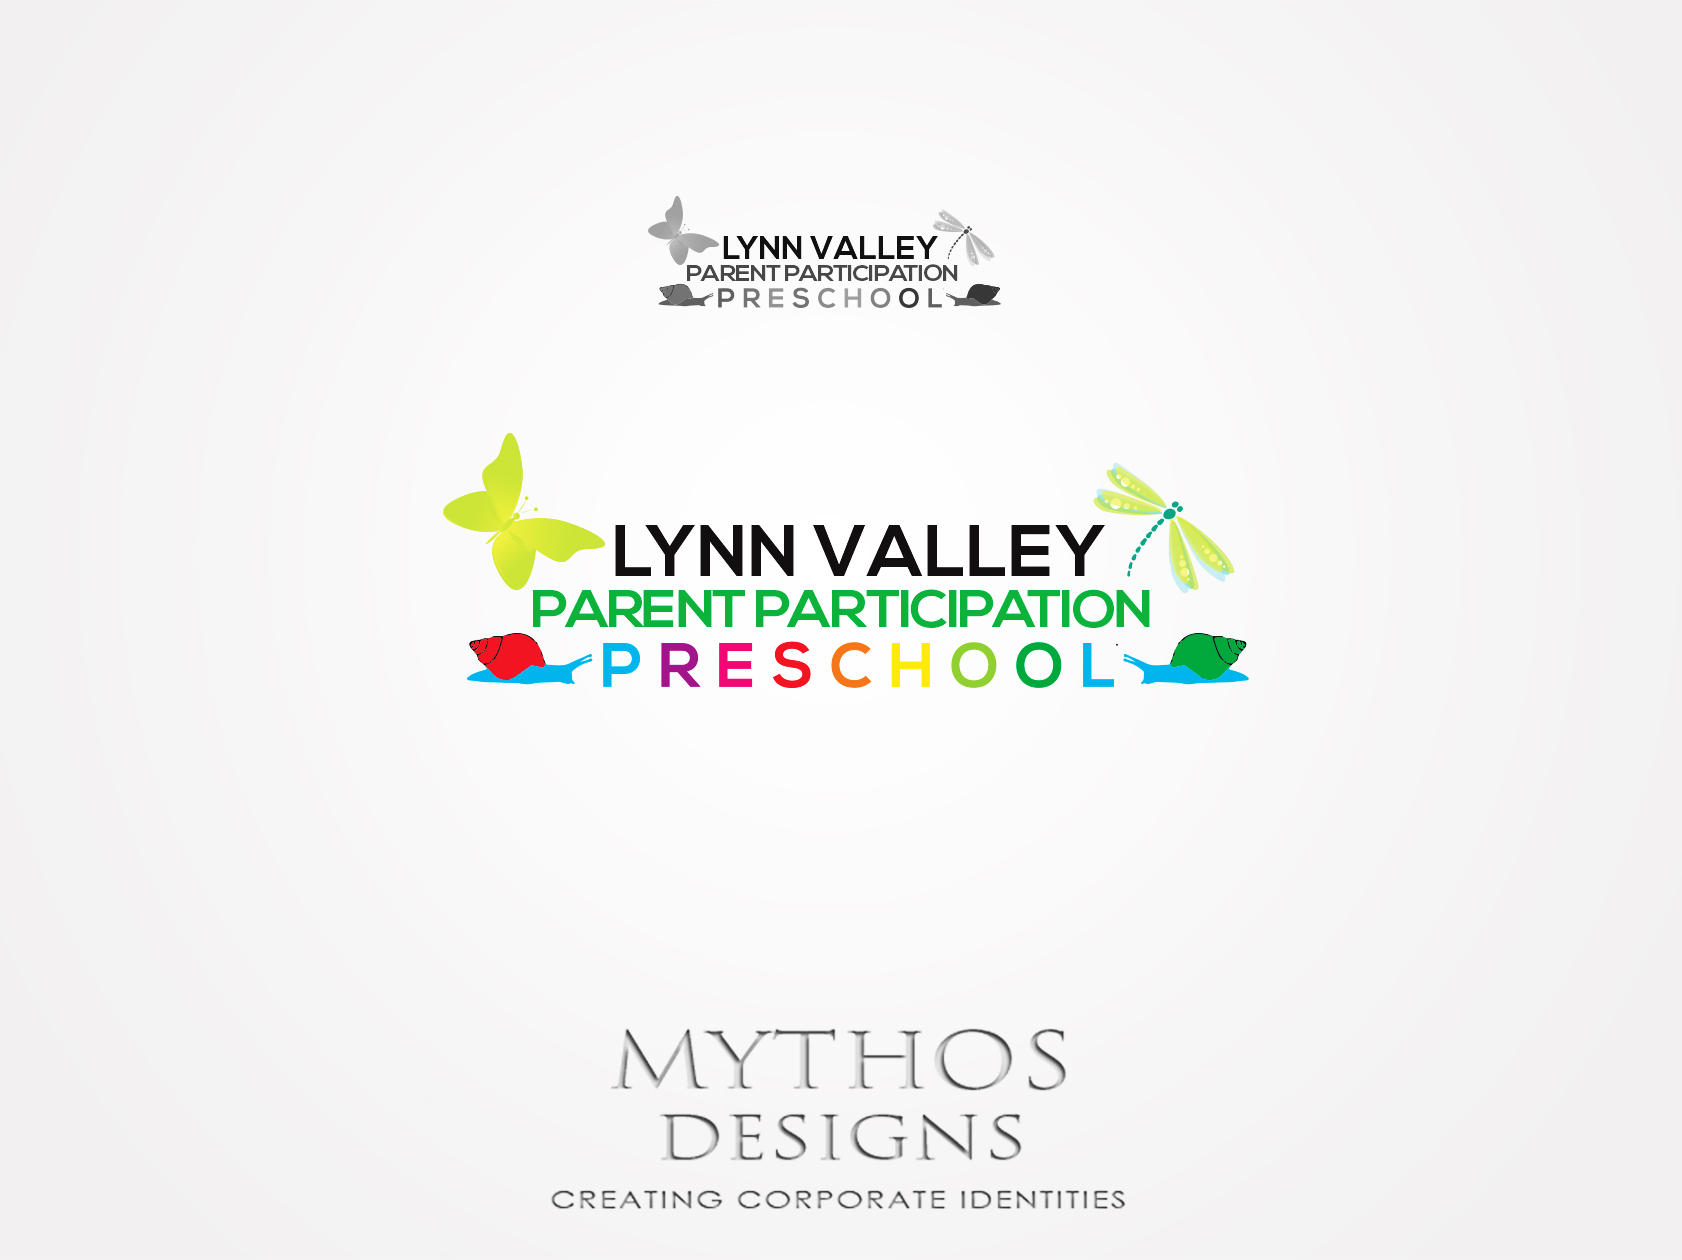 Logo Design by Mythos Designs - Entry No. 91 in the Logo Design Contest New Logo Design for Lynn Valley Parent Participation Preschool.